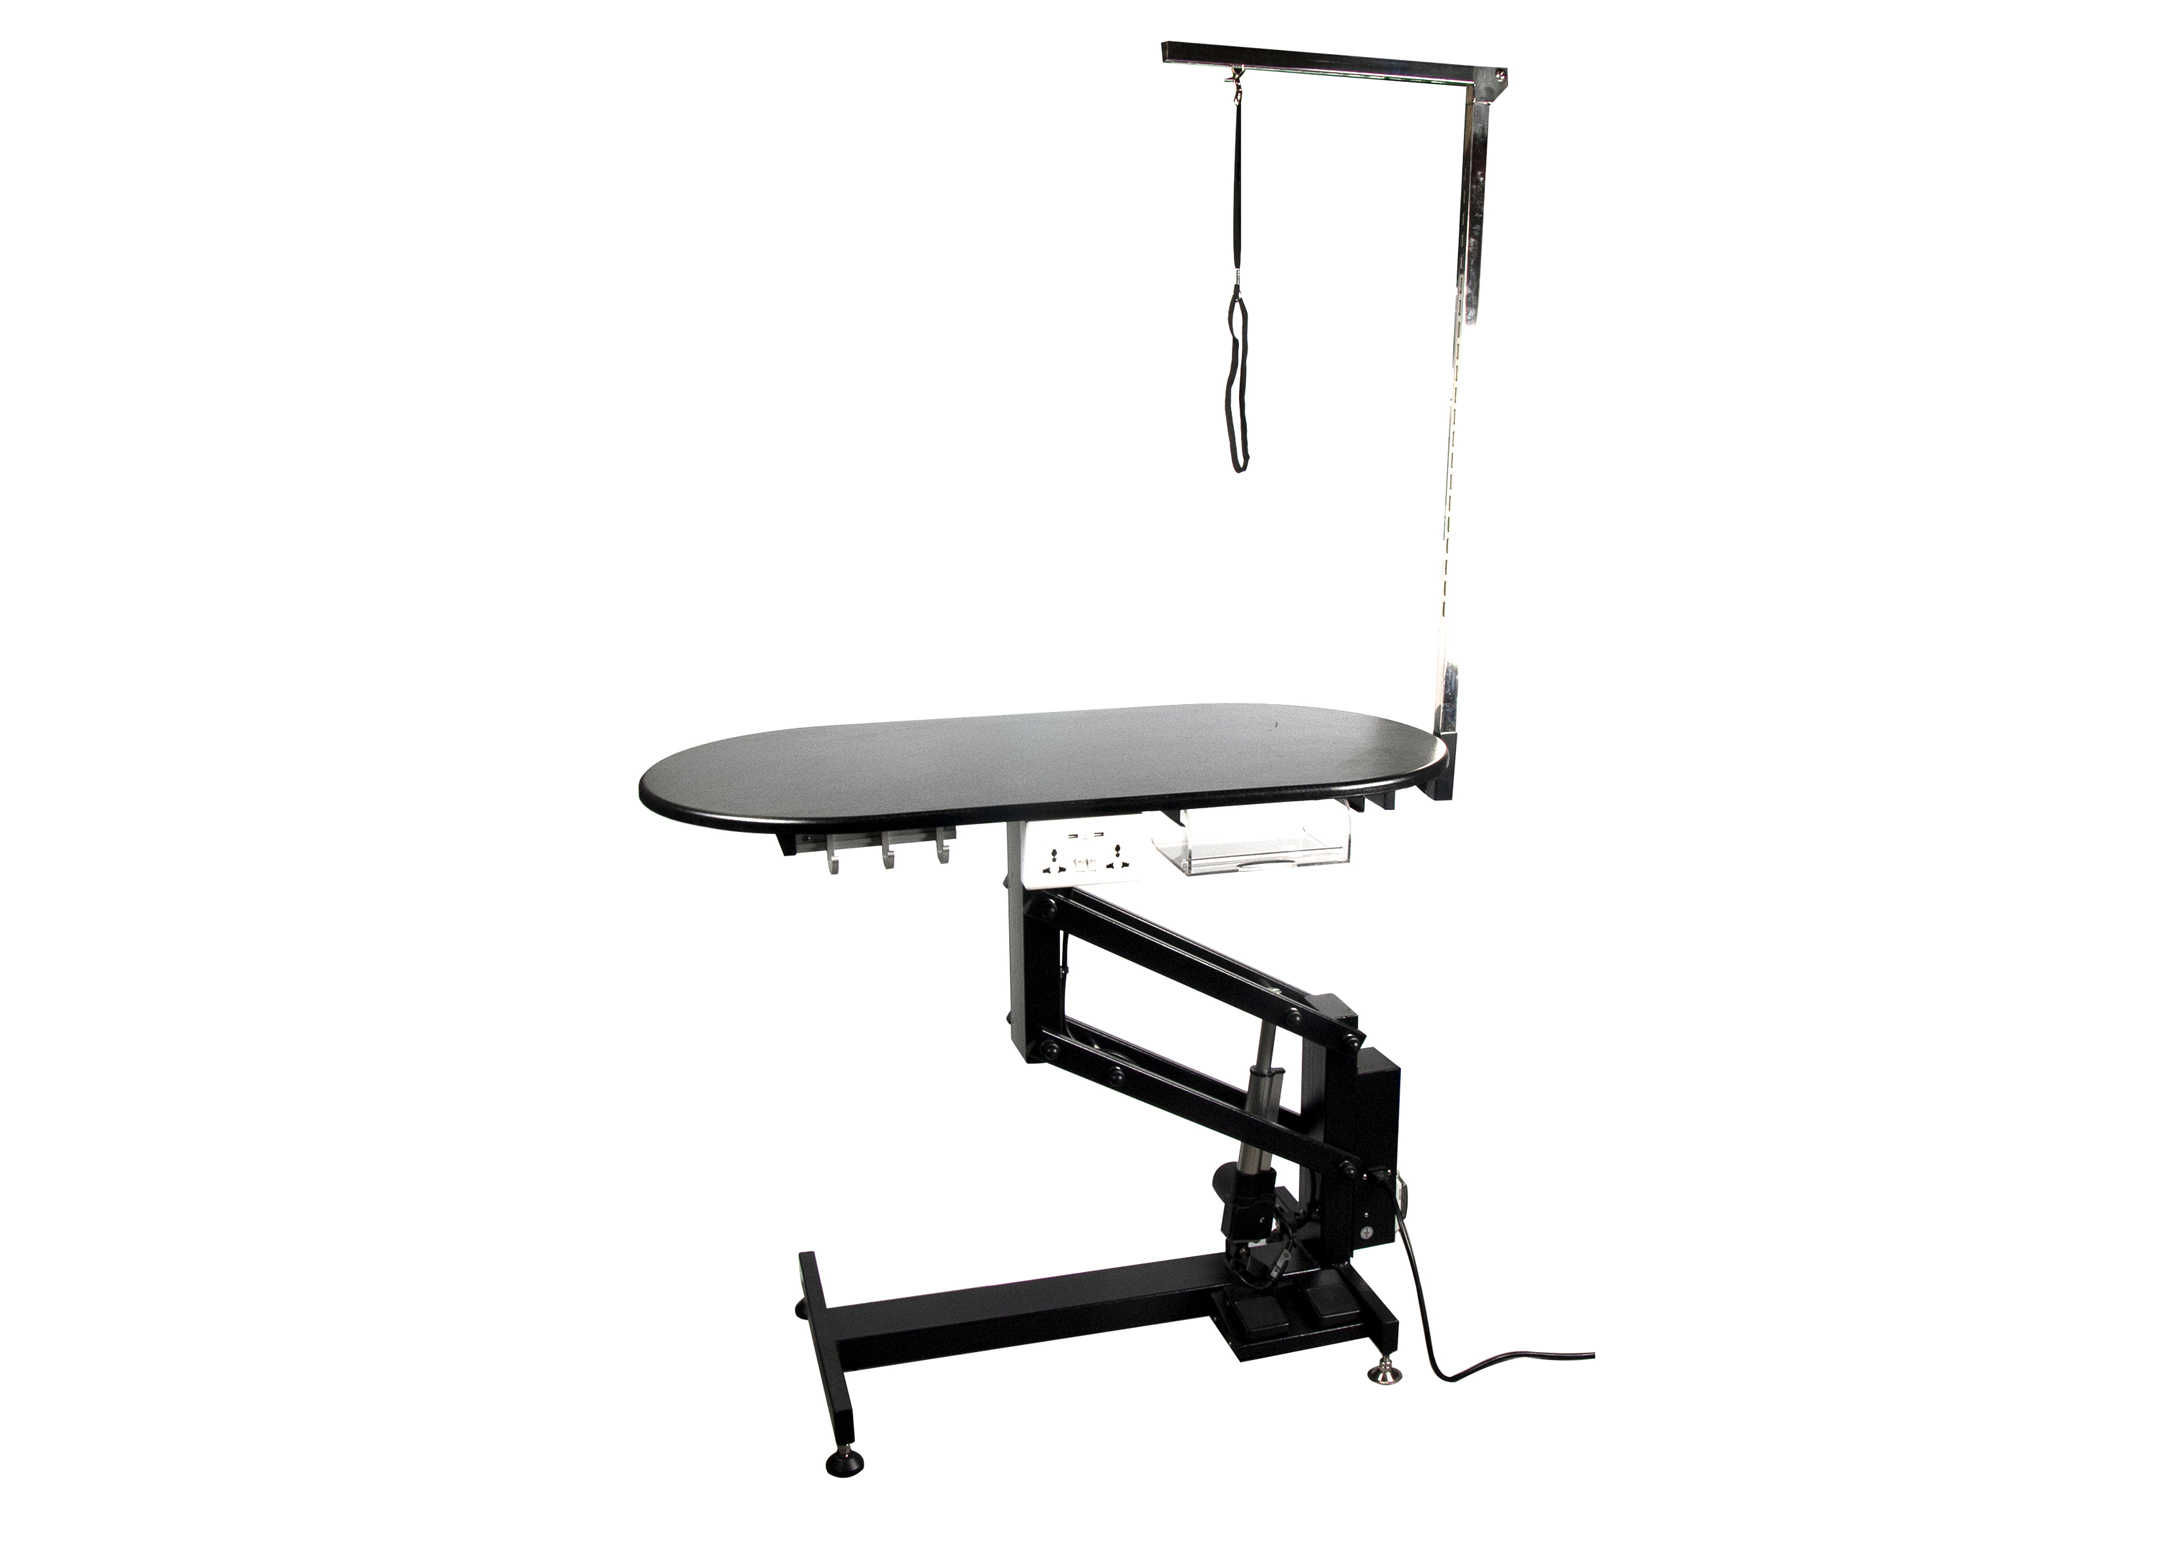 DEMO Groom-X Pro Special Table de Salon Ovale Electrique 110x55x53-109cmh avec Potence